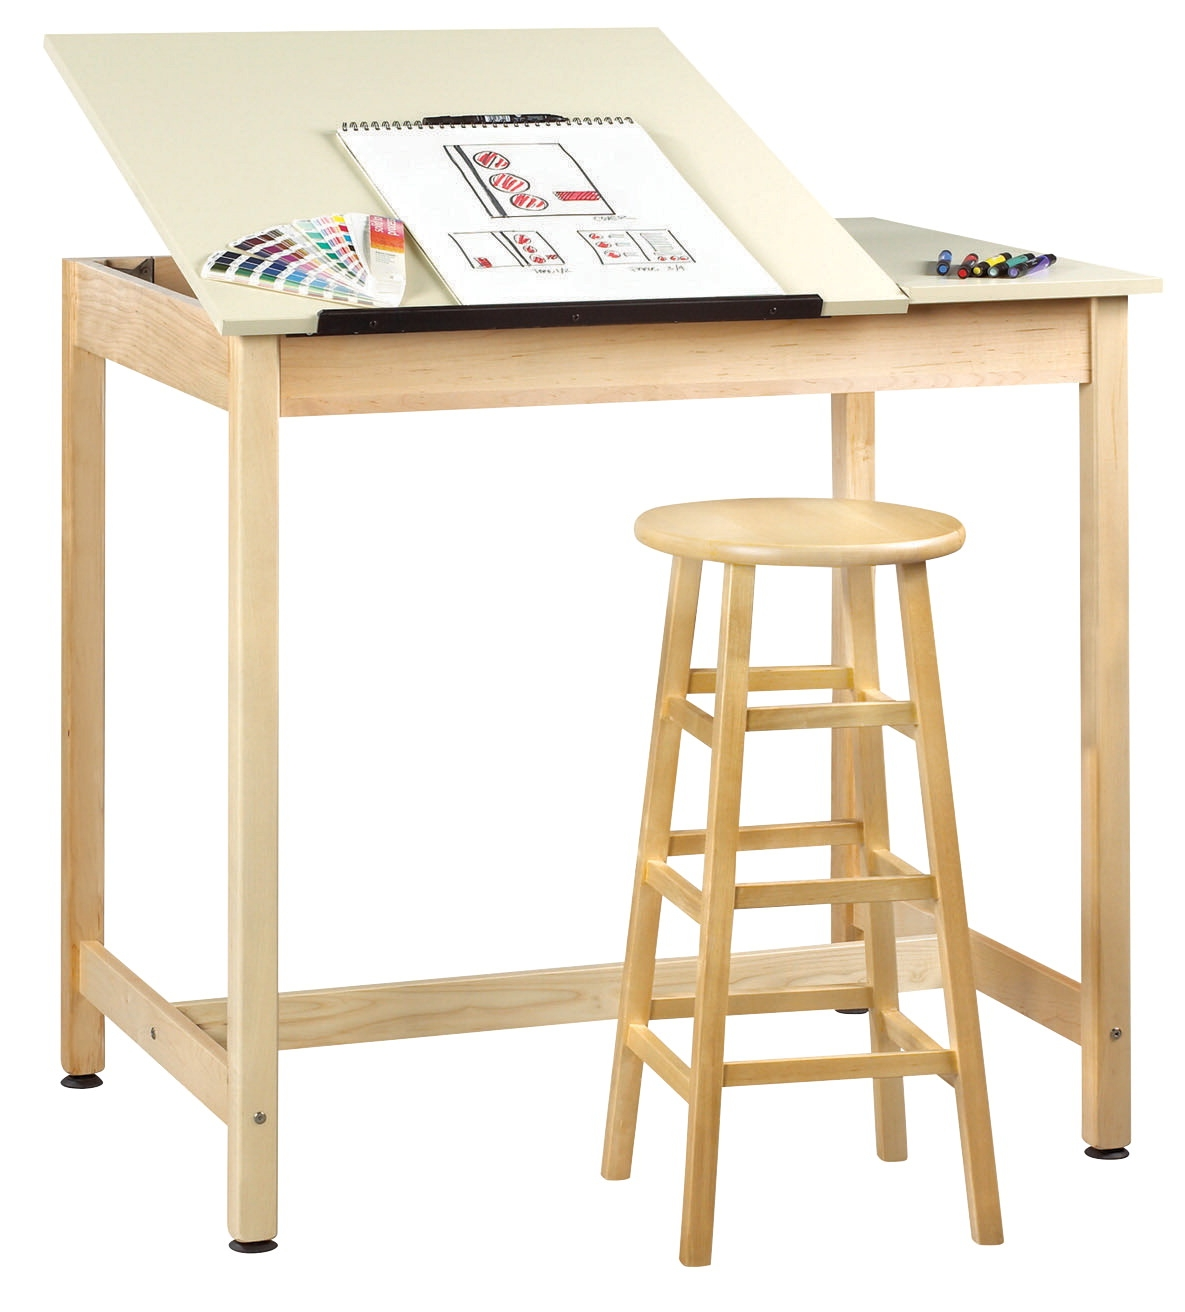 Diversified Woodcrafts Drafting Table; Split Top; 42 X 30 X 39-3/4 Inches; Maple - 599207 - Table Tennis Table Tennis 599207